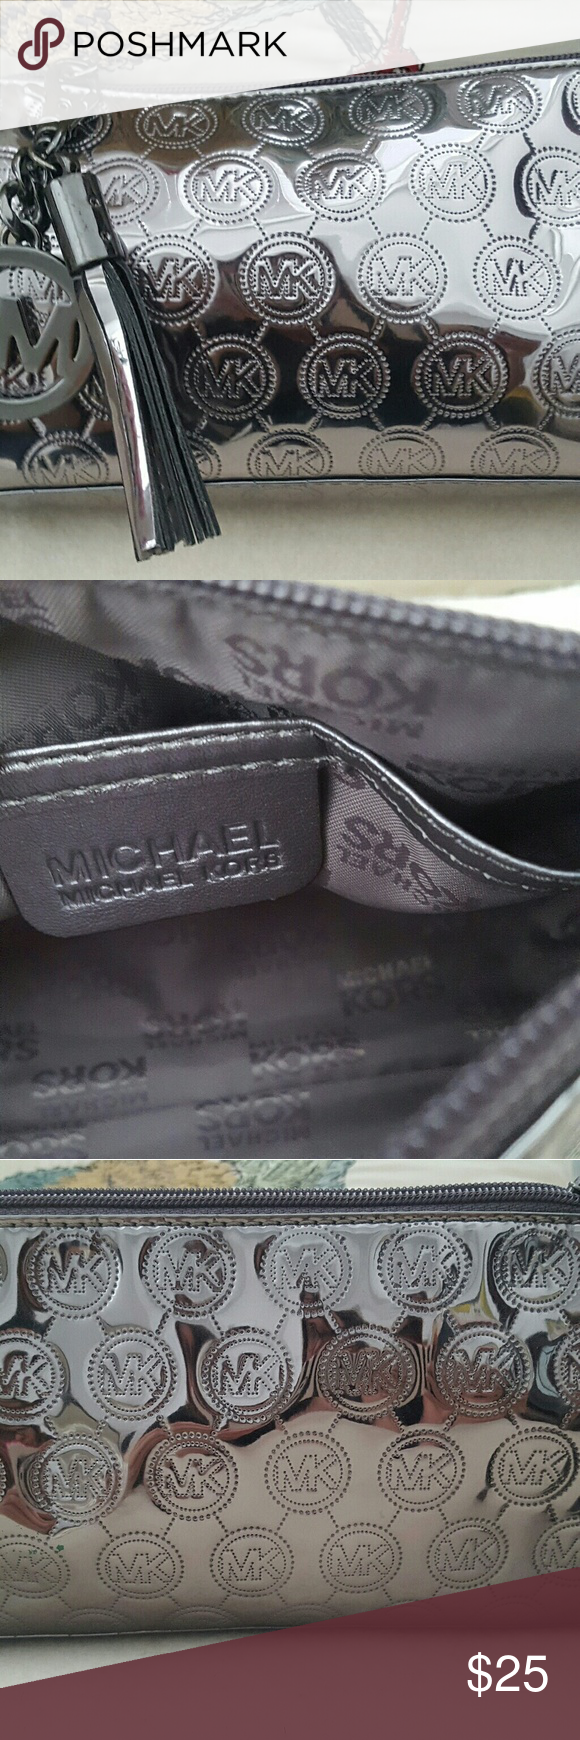 Michael Kors metalic cosmetic case Up for grabs is Michael Kors cosmetic case. Bag is in mint excellent,used condition and clean inside,no stains!! two packets inside the cosmatic case. Thanks for viewing ? Michael Kors Bags Cosmetic Bags & Cases